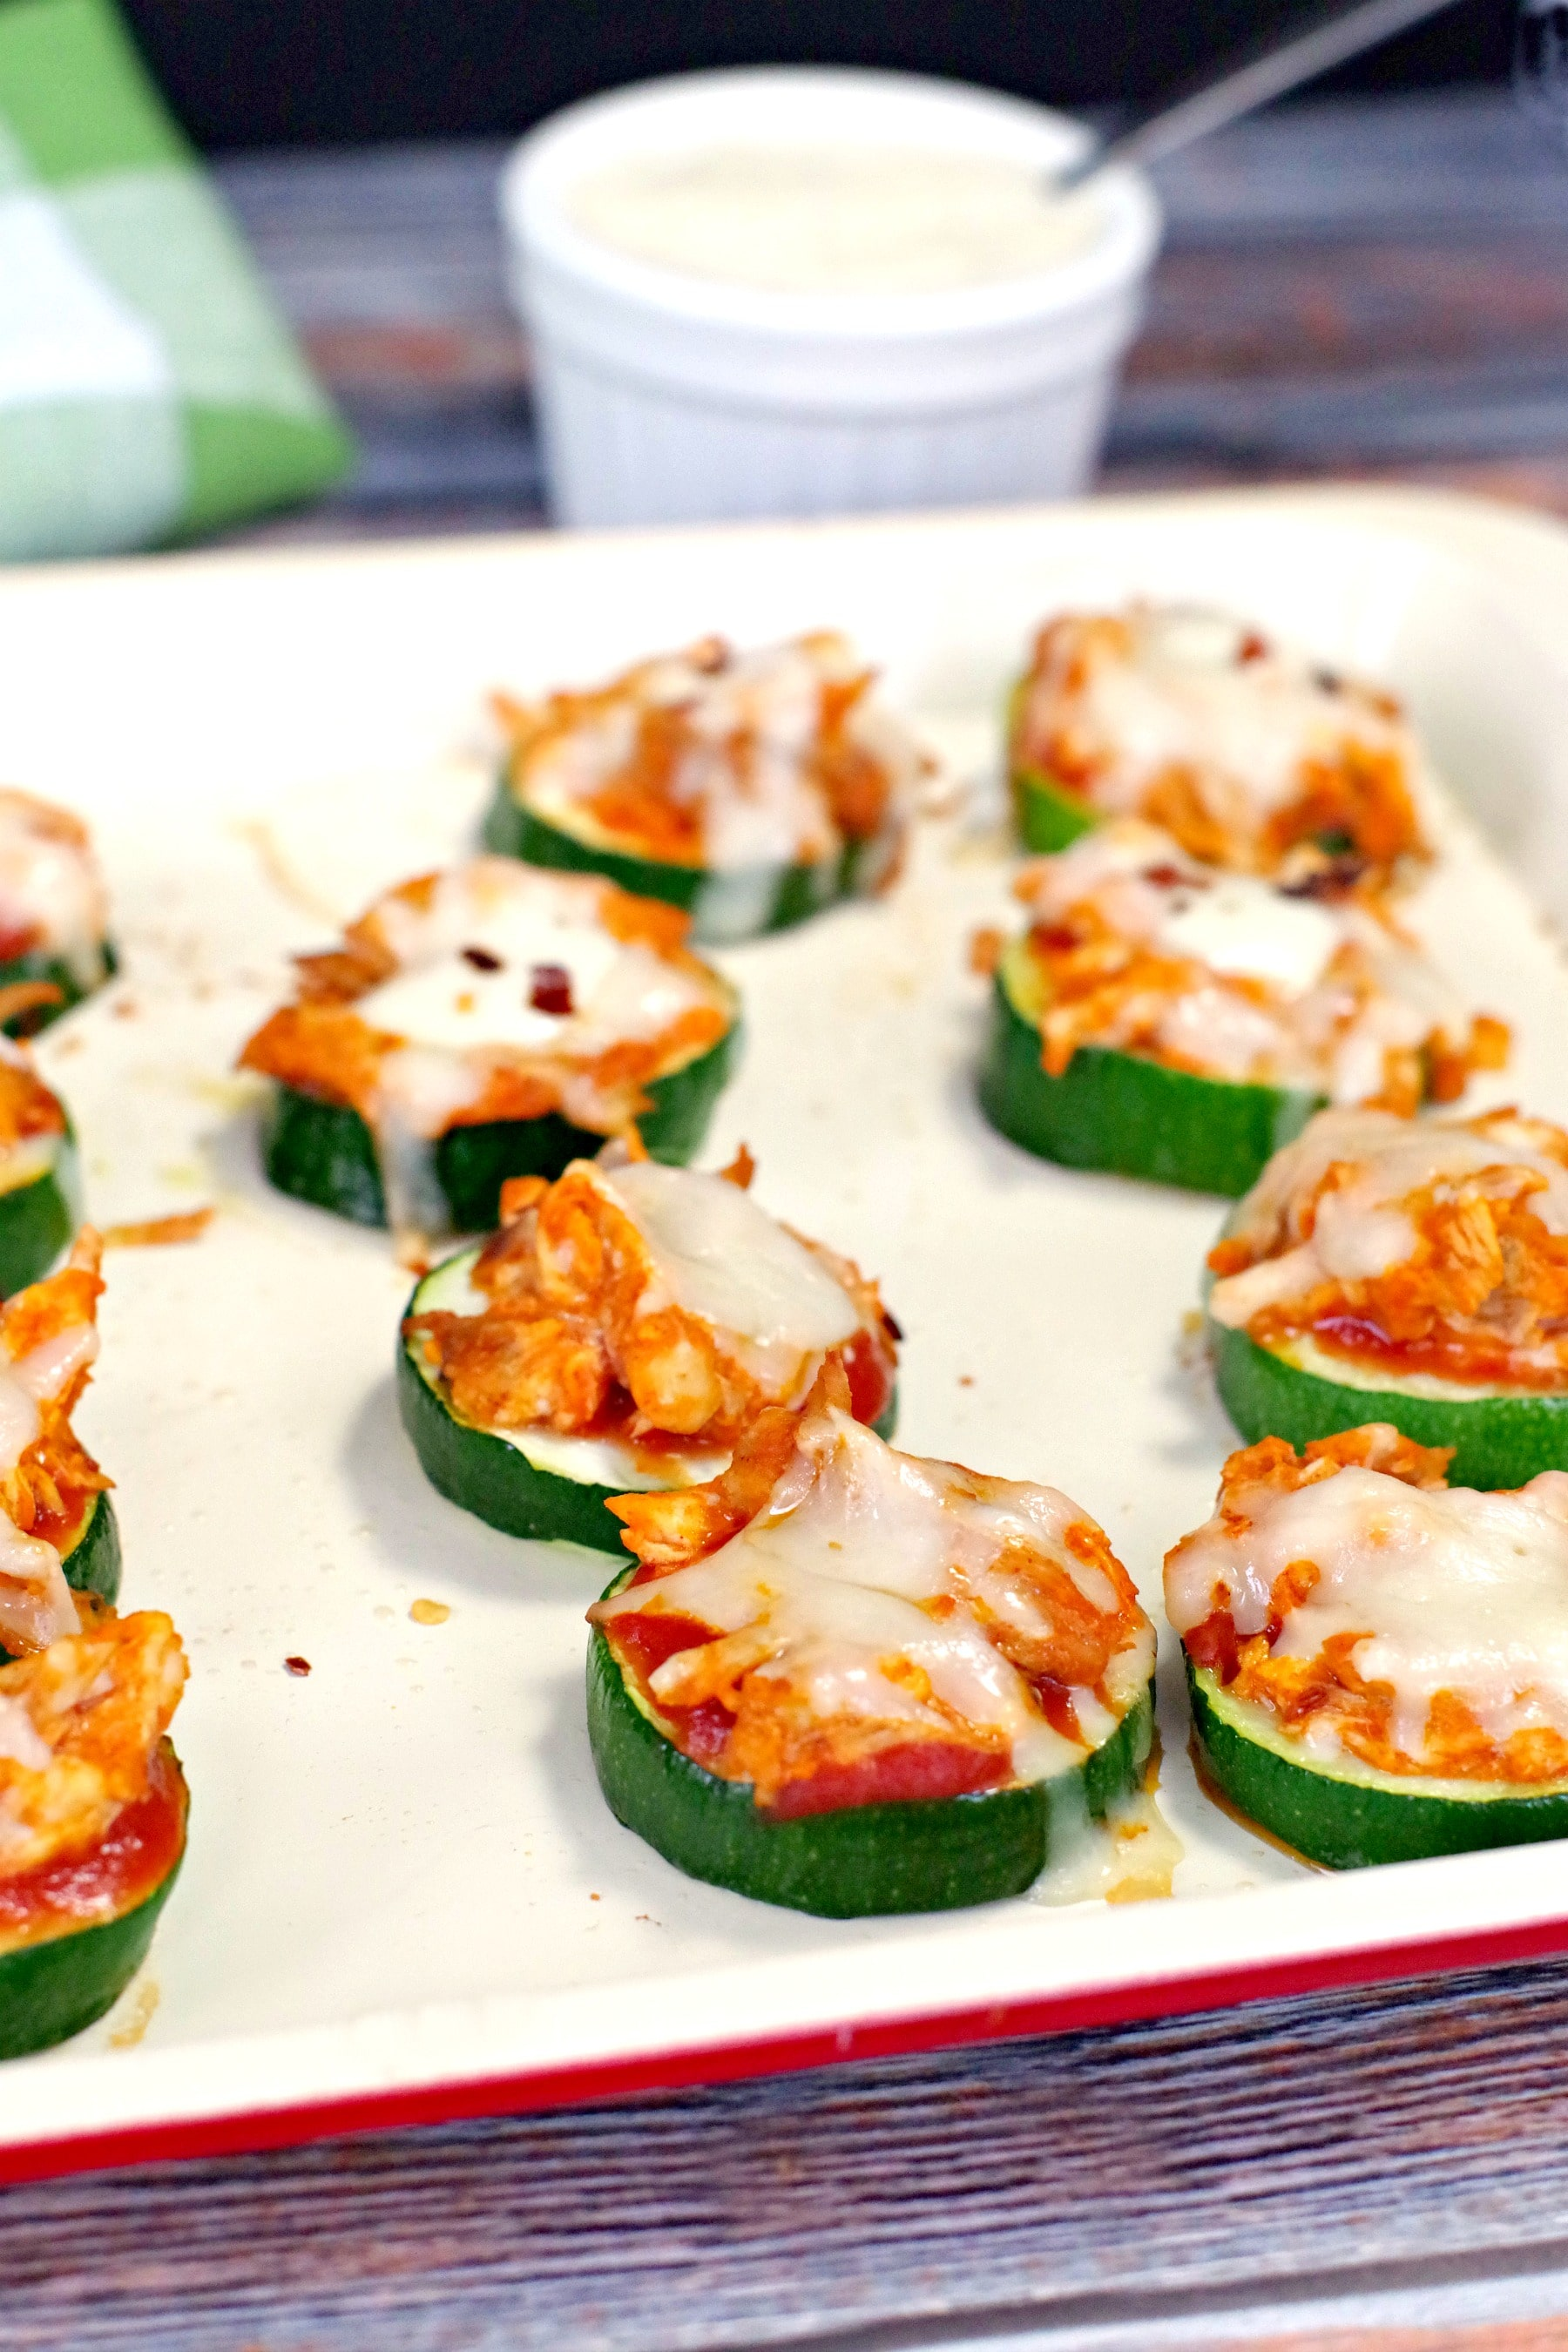 Buffalo Chicken Zucchini Pizza Bites on an off-white baking tray